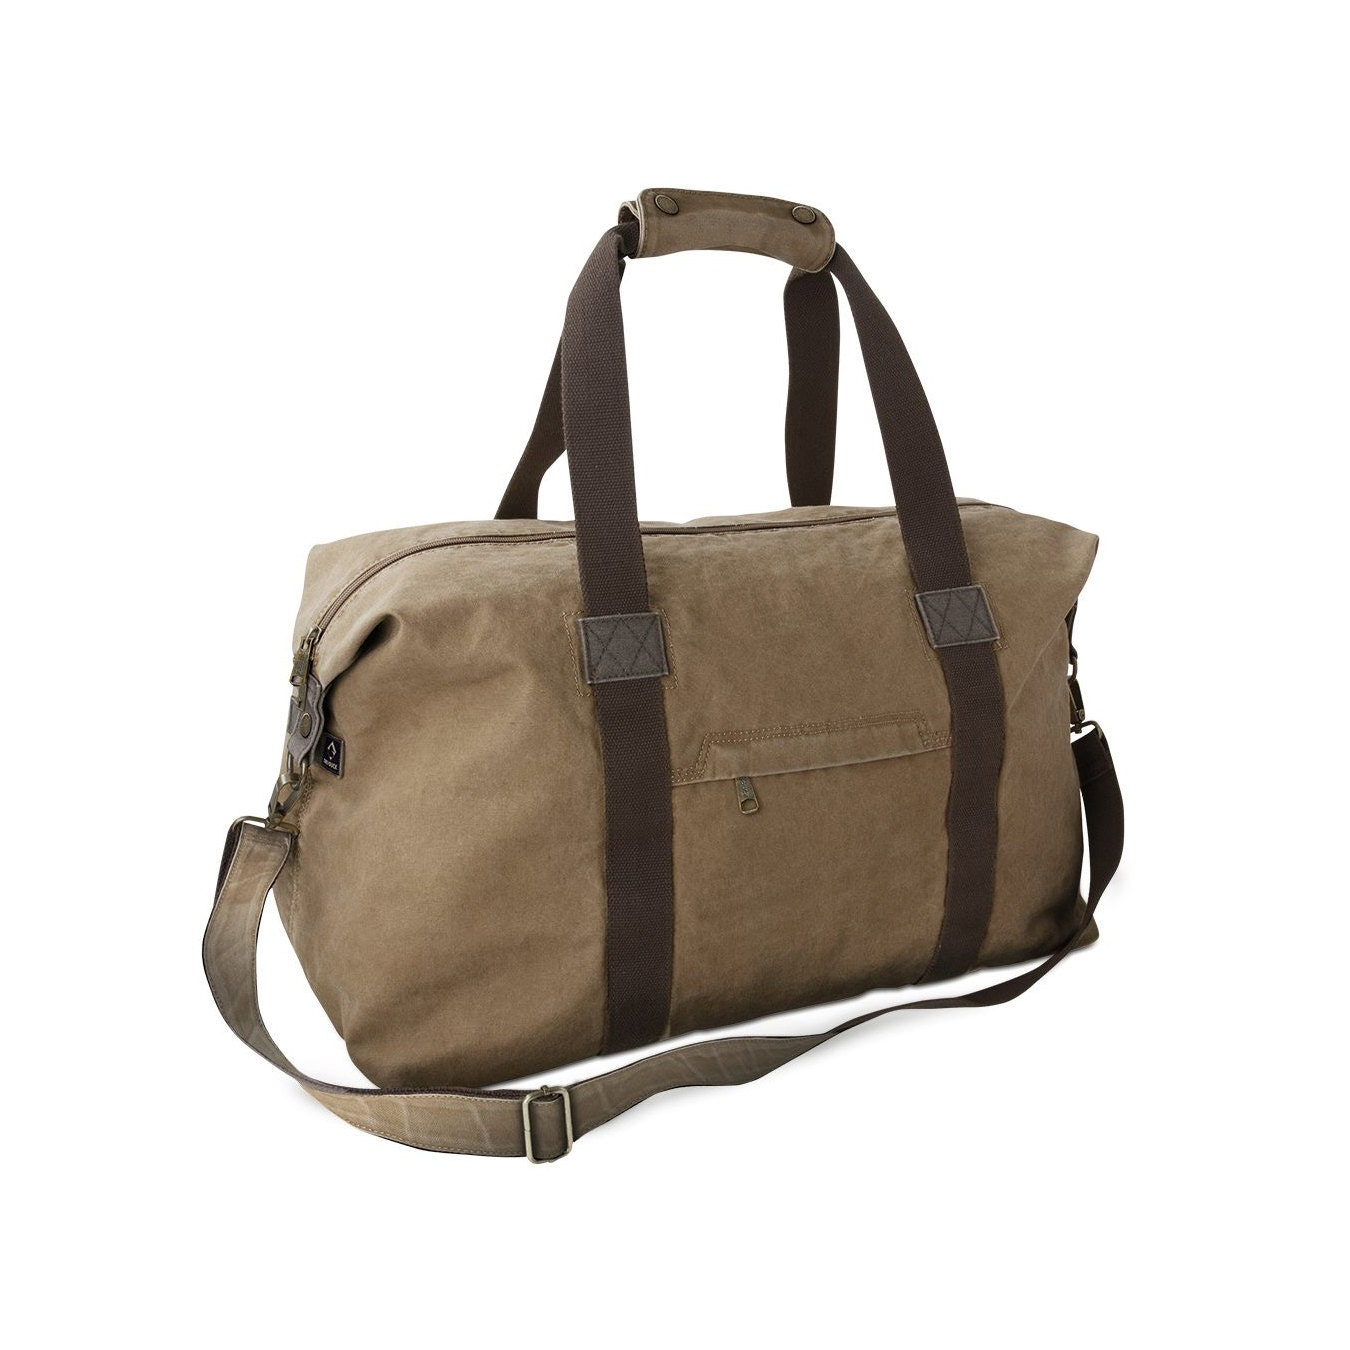 Transport Canvas Weekend Bag sisk-profi.ga $ SHOP NOW. Cool and casual, this durable weekender is a striped update to Madewell's classic camel bag. Advertisement - .